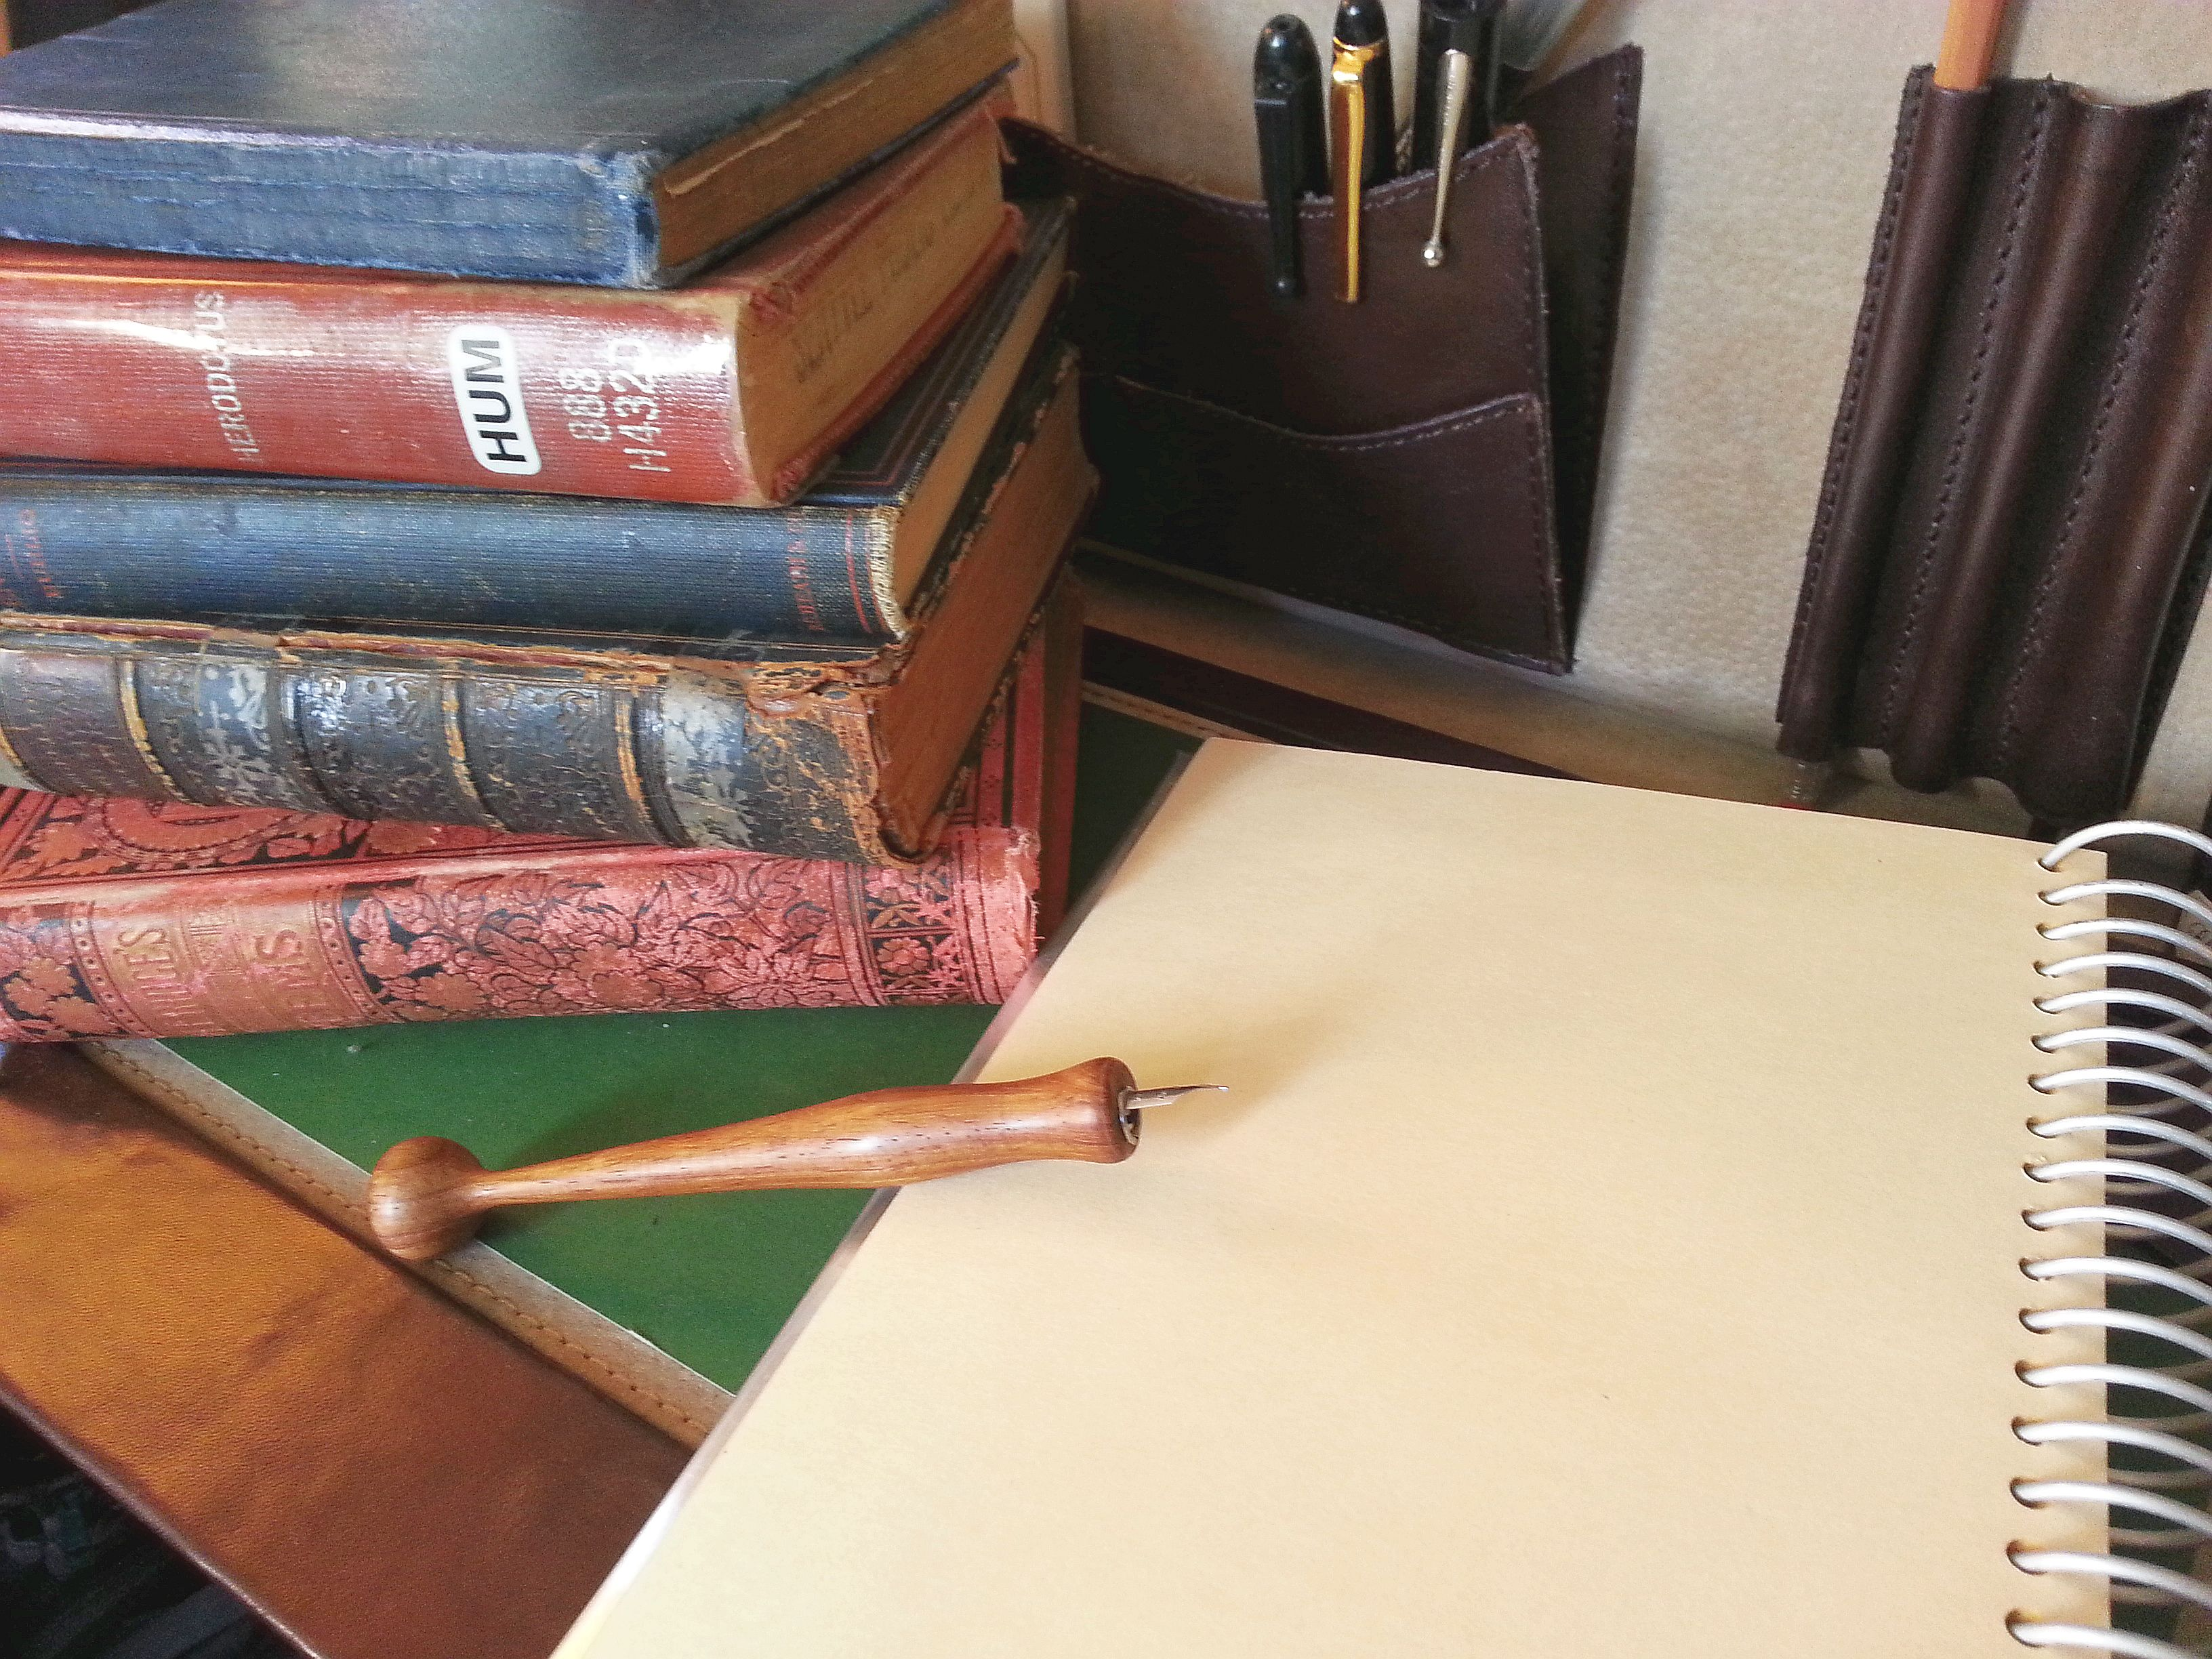 A pile of books stacked next to a notebook and a nib pen.